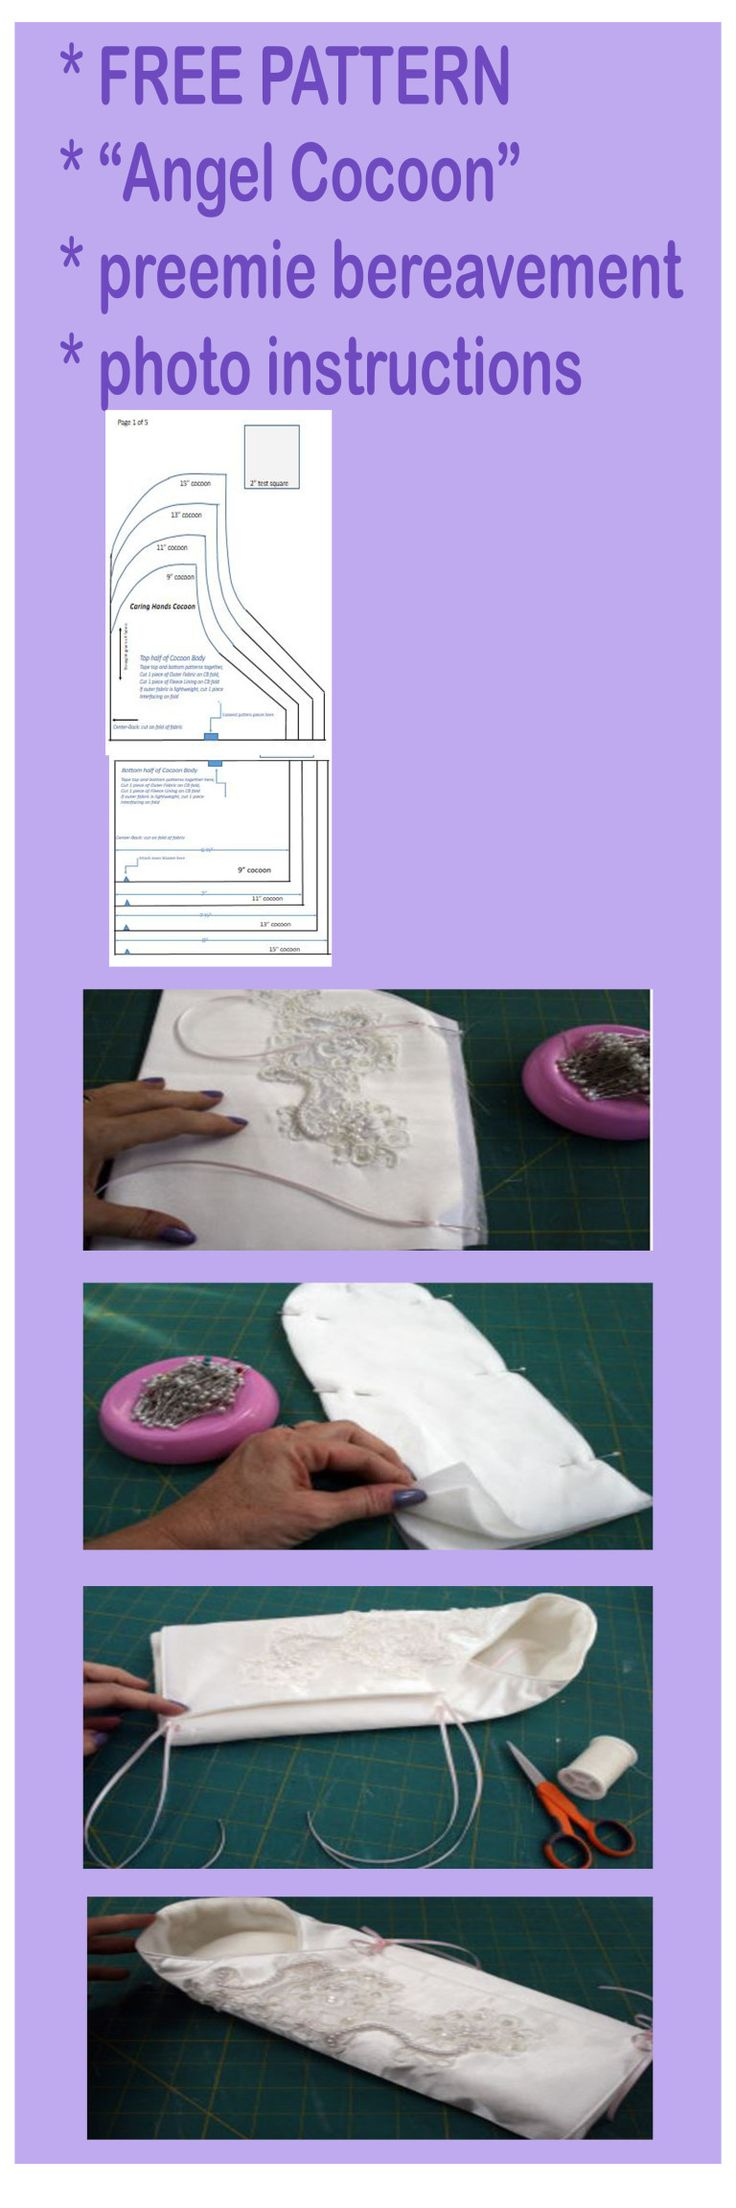 AngelCocoonPattern copy